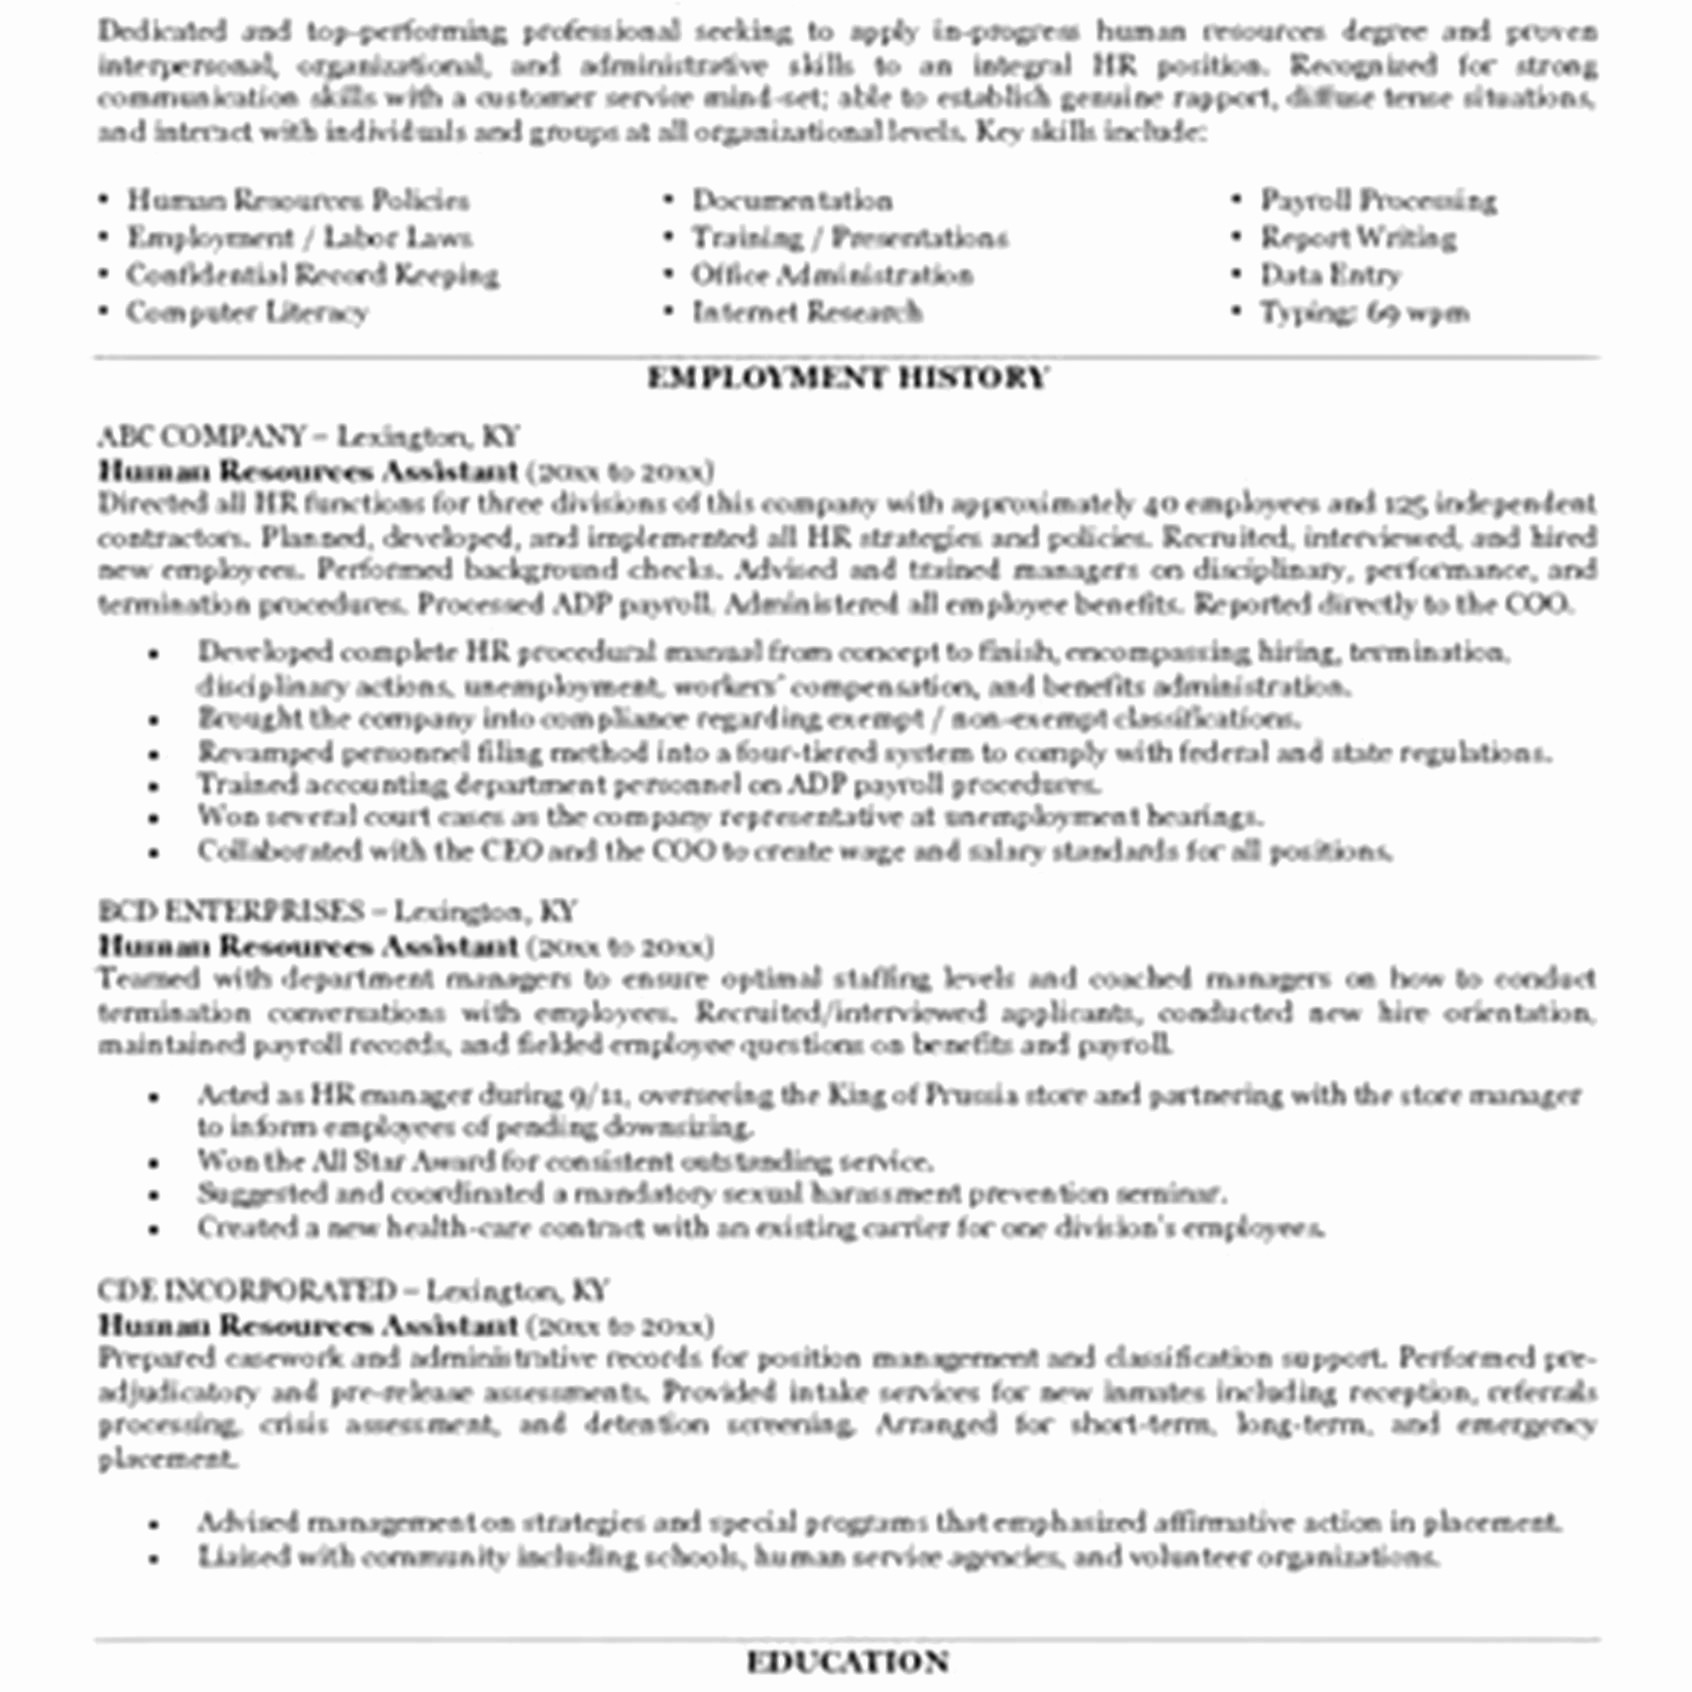 human resource resume template Collection-Sample Human Resources Manager Resume New Human Resources Manager Resume Sample New Human Resource Assistant 20-j